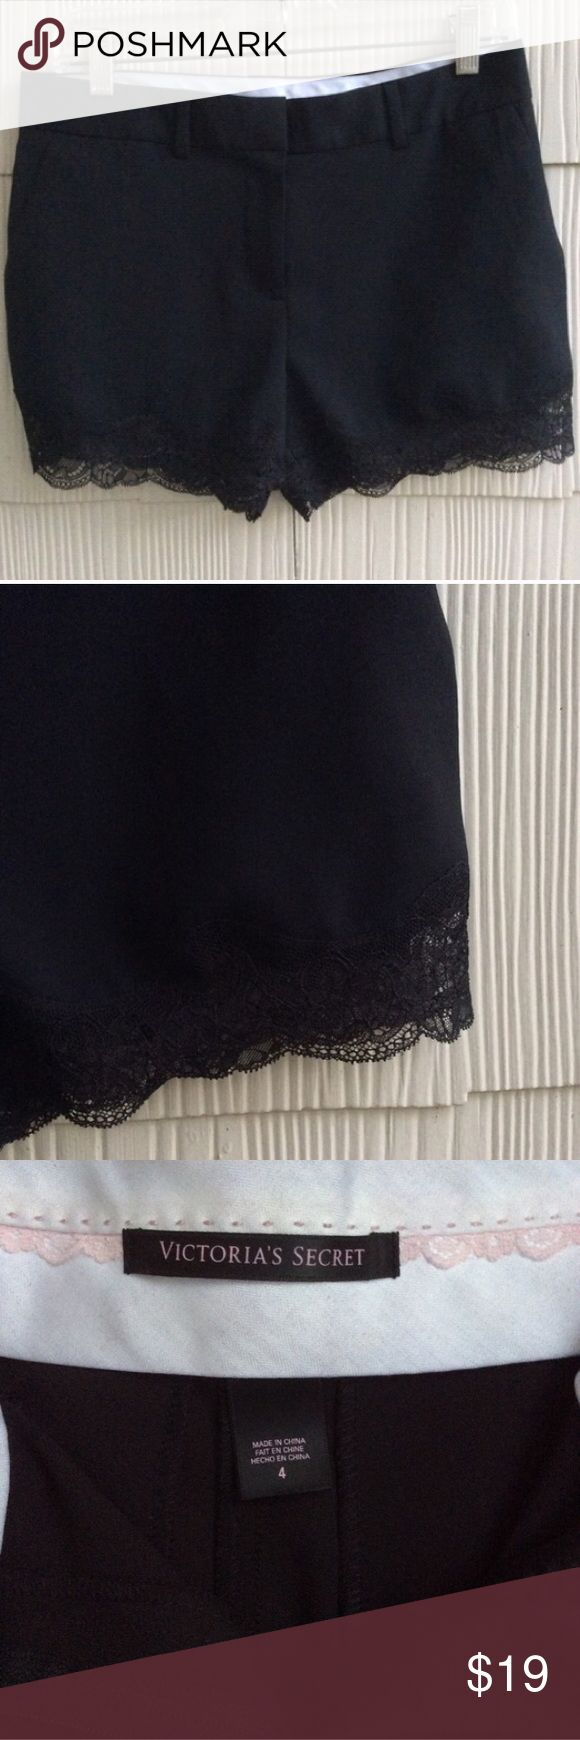 Victoria Secret Lace trimmed Shorts Black Victoria's Secret dress shirts with lace along the hem. Victoria's Secret Shorts